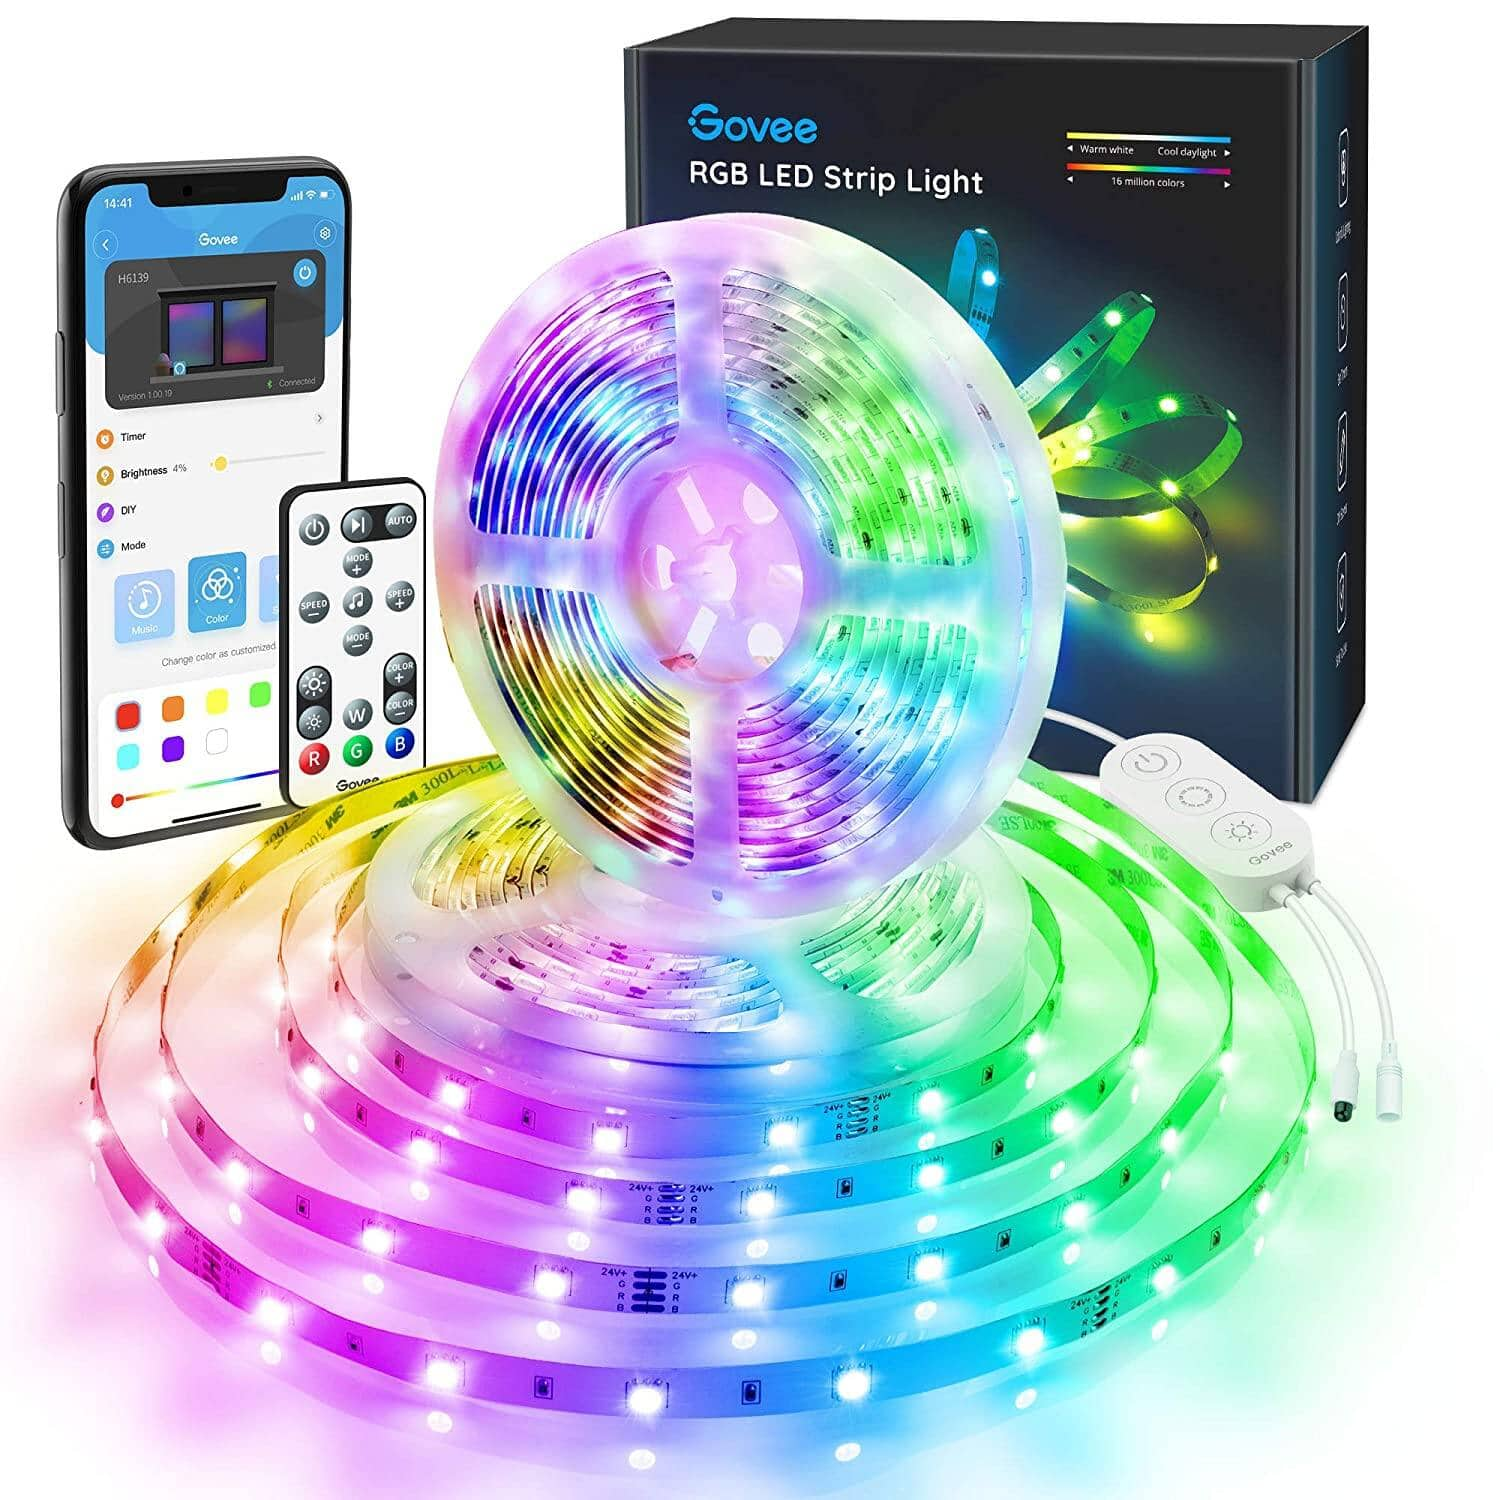 Govee Color Changing 32.8ft LED Strip Lights w App Control and IR Remote - $22.99 + Free Shipping